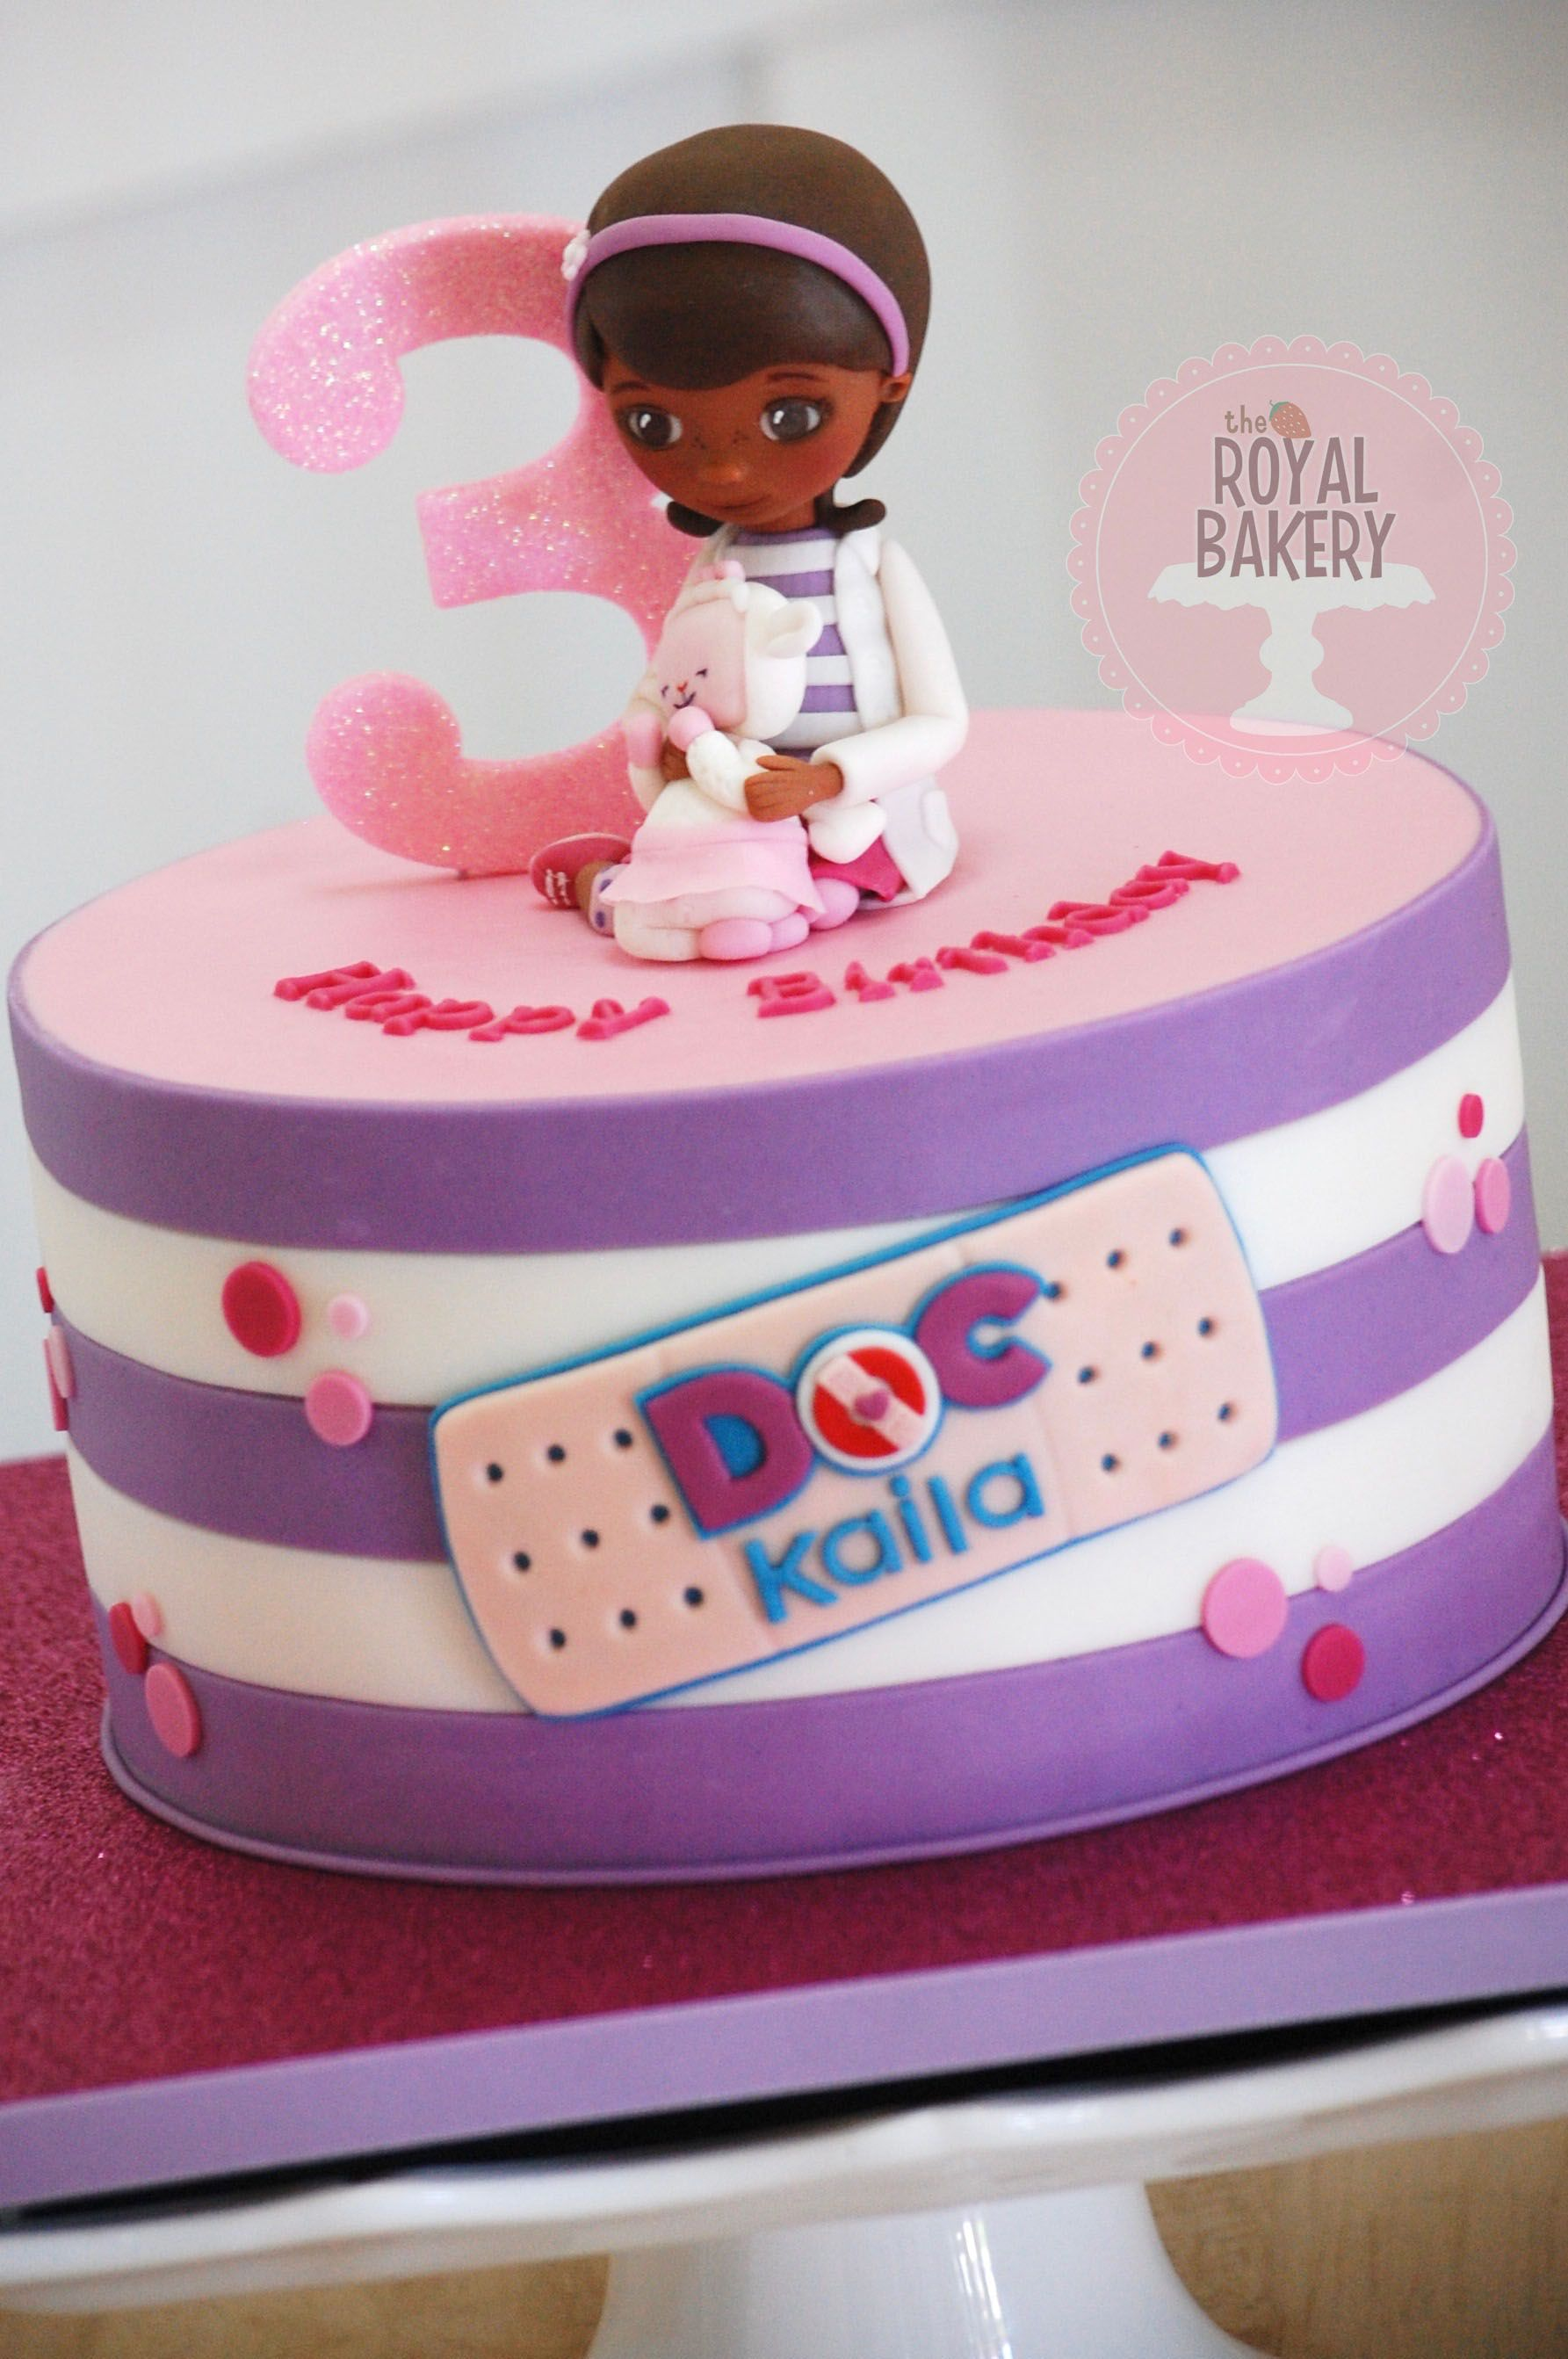 Tremendous Doc Mcstuffins Cake With Fondant Doc And Lambie Figures Doc Birthday Cards Printable Nowaargucafe Filternl